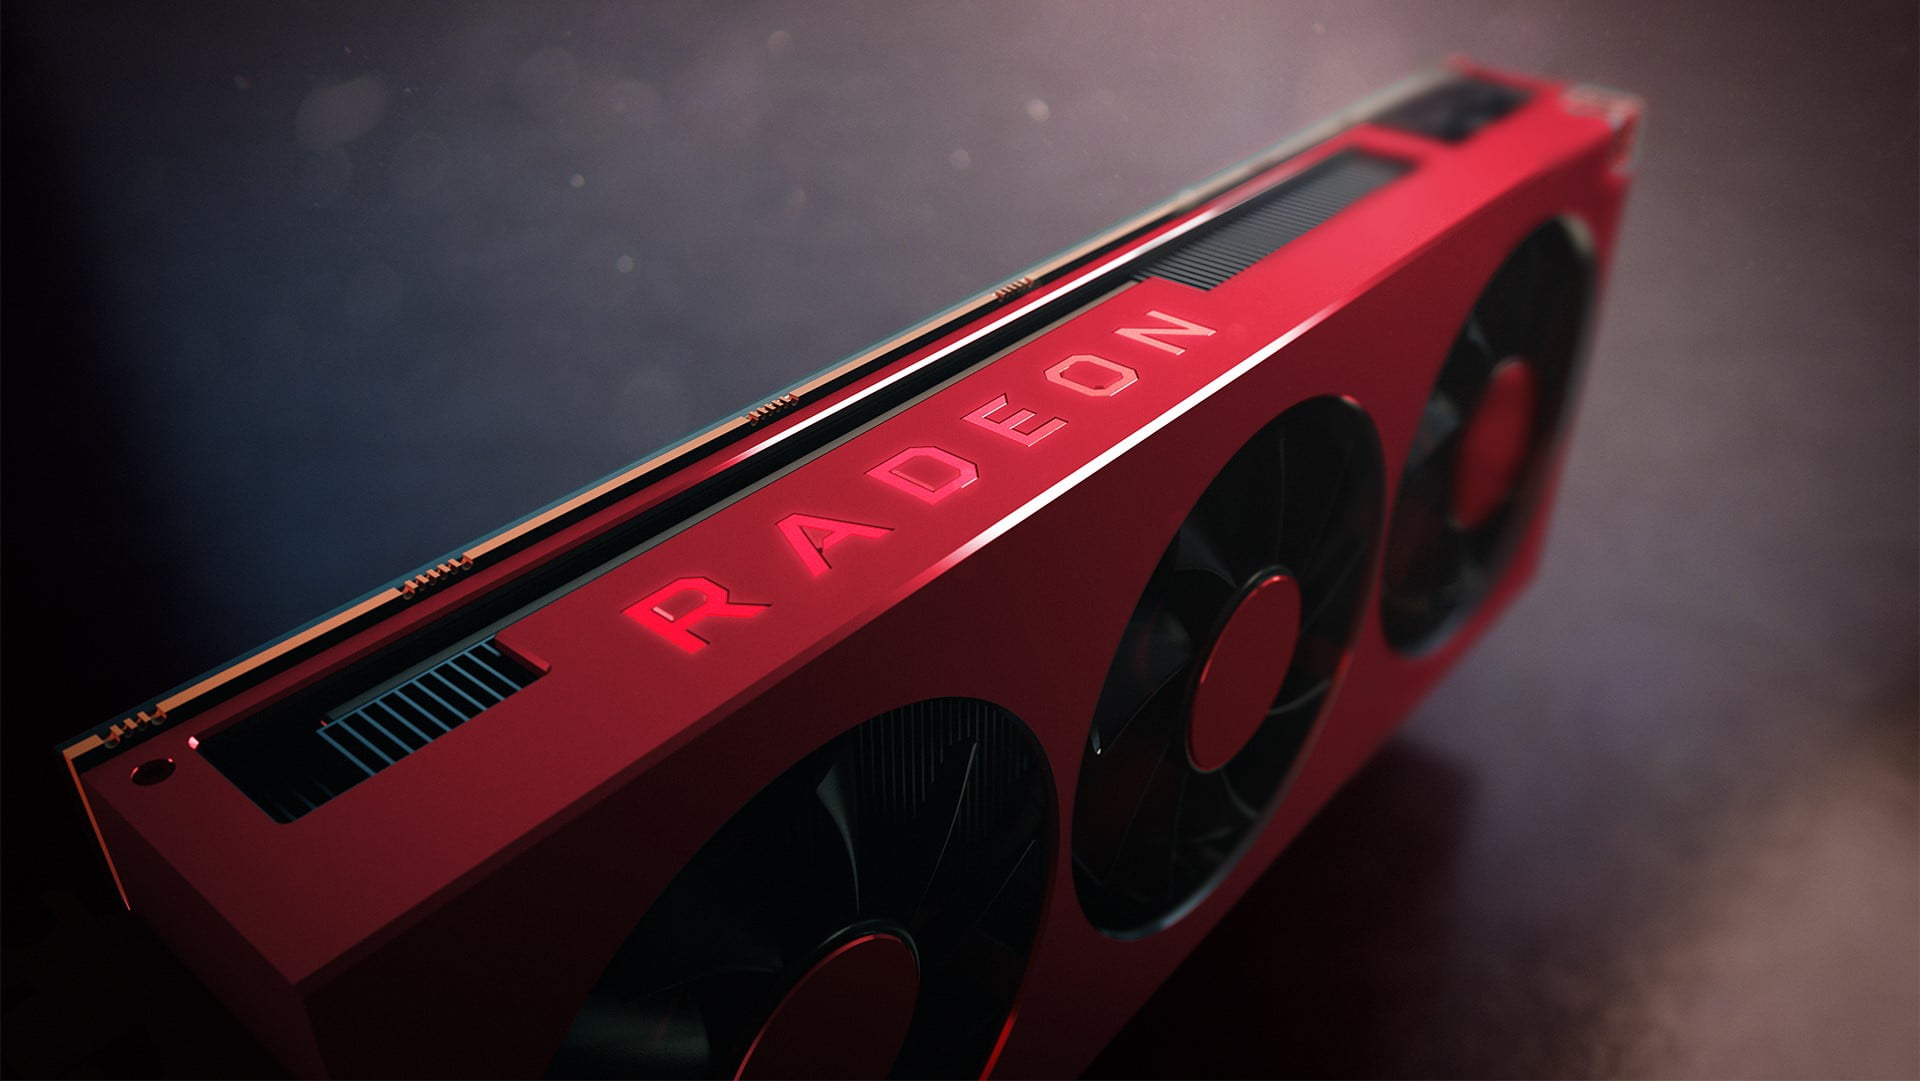 Asus ROG Strix Radeon RX 6800 XT will exceed 2.50GHz at 290W TGP